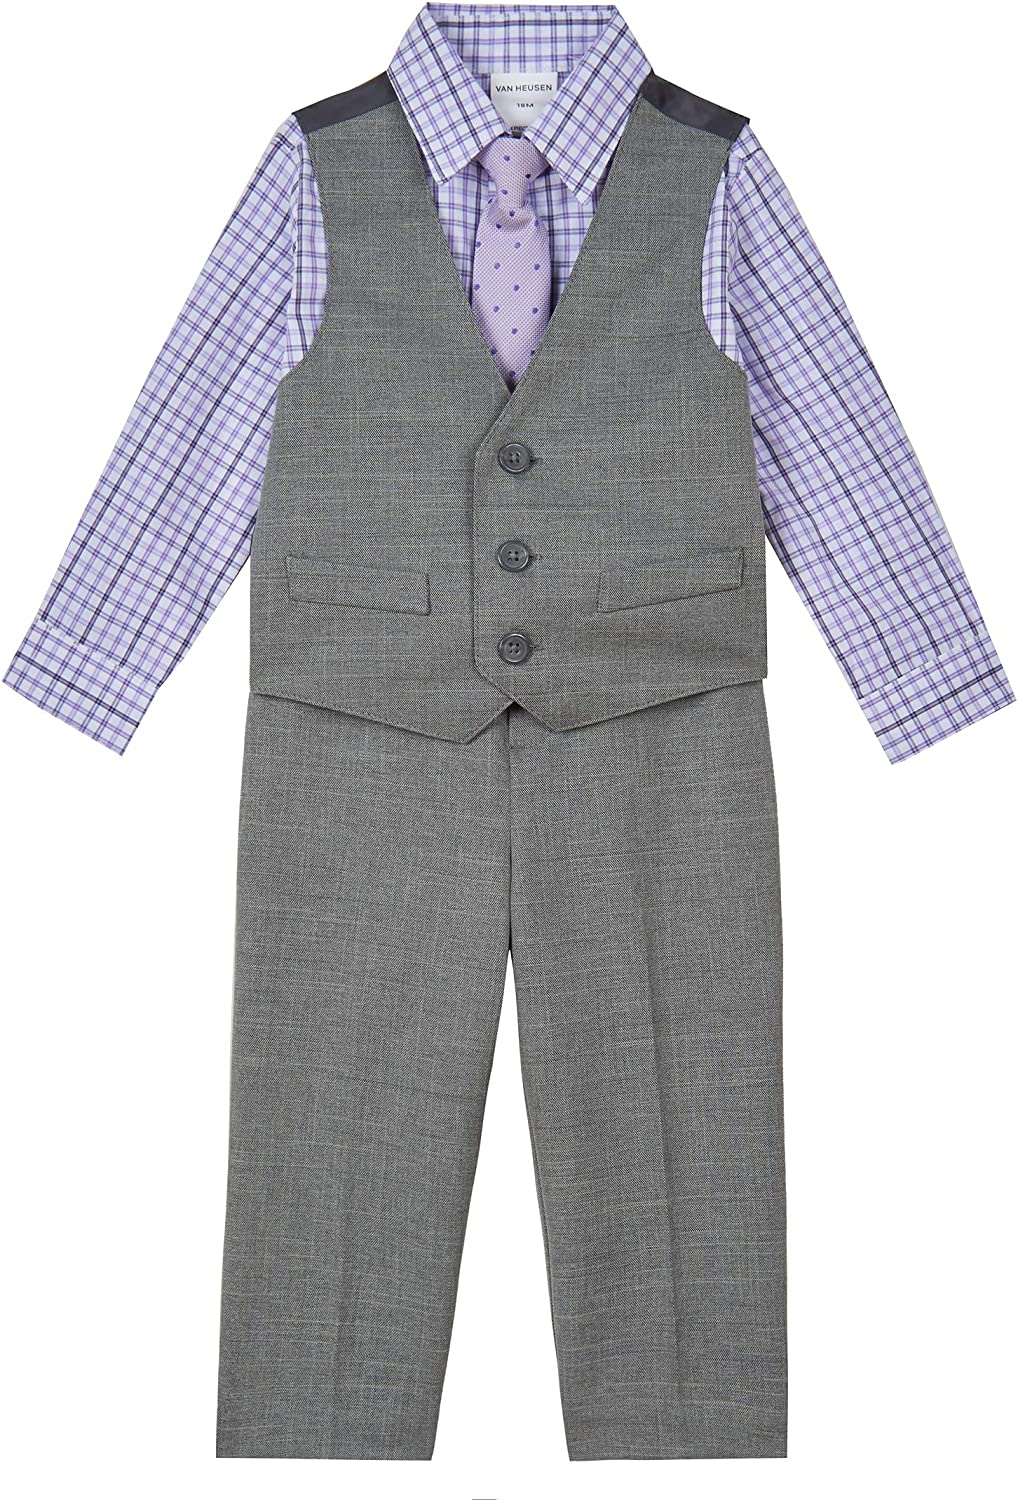 Van Heusen Baby Boys Max 54% OFF 4-Piece Dress Set Outlet ☆ Free Shipping Formal Vest Up